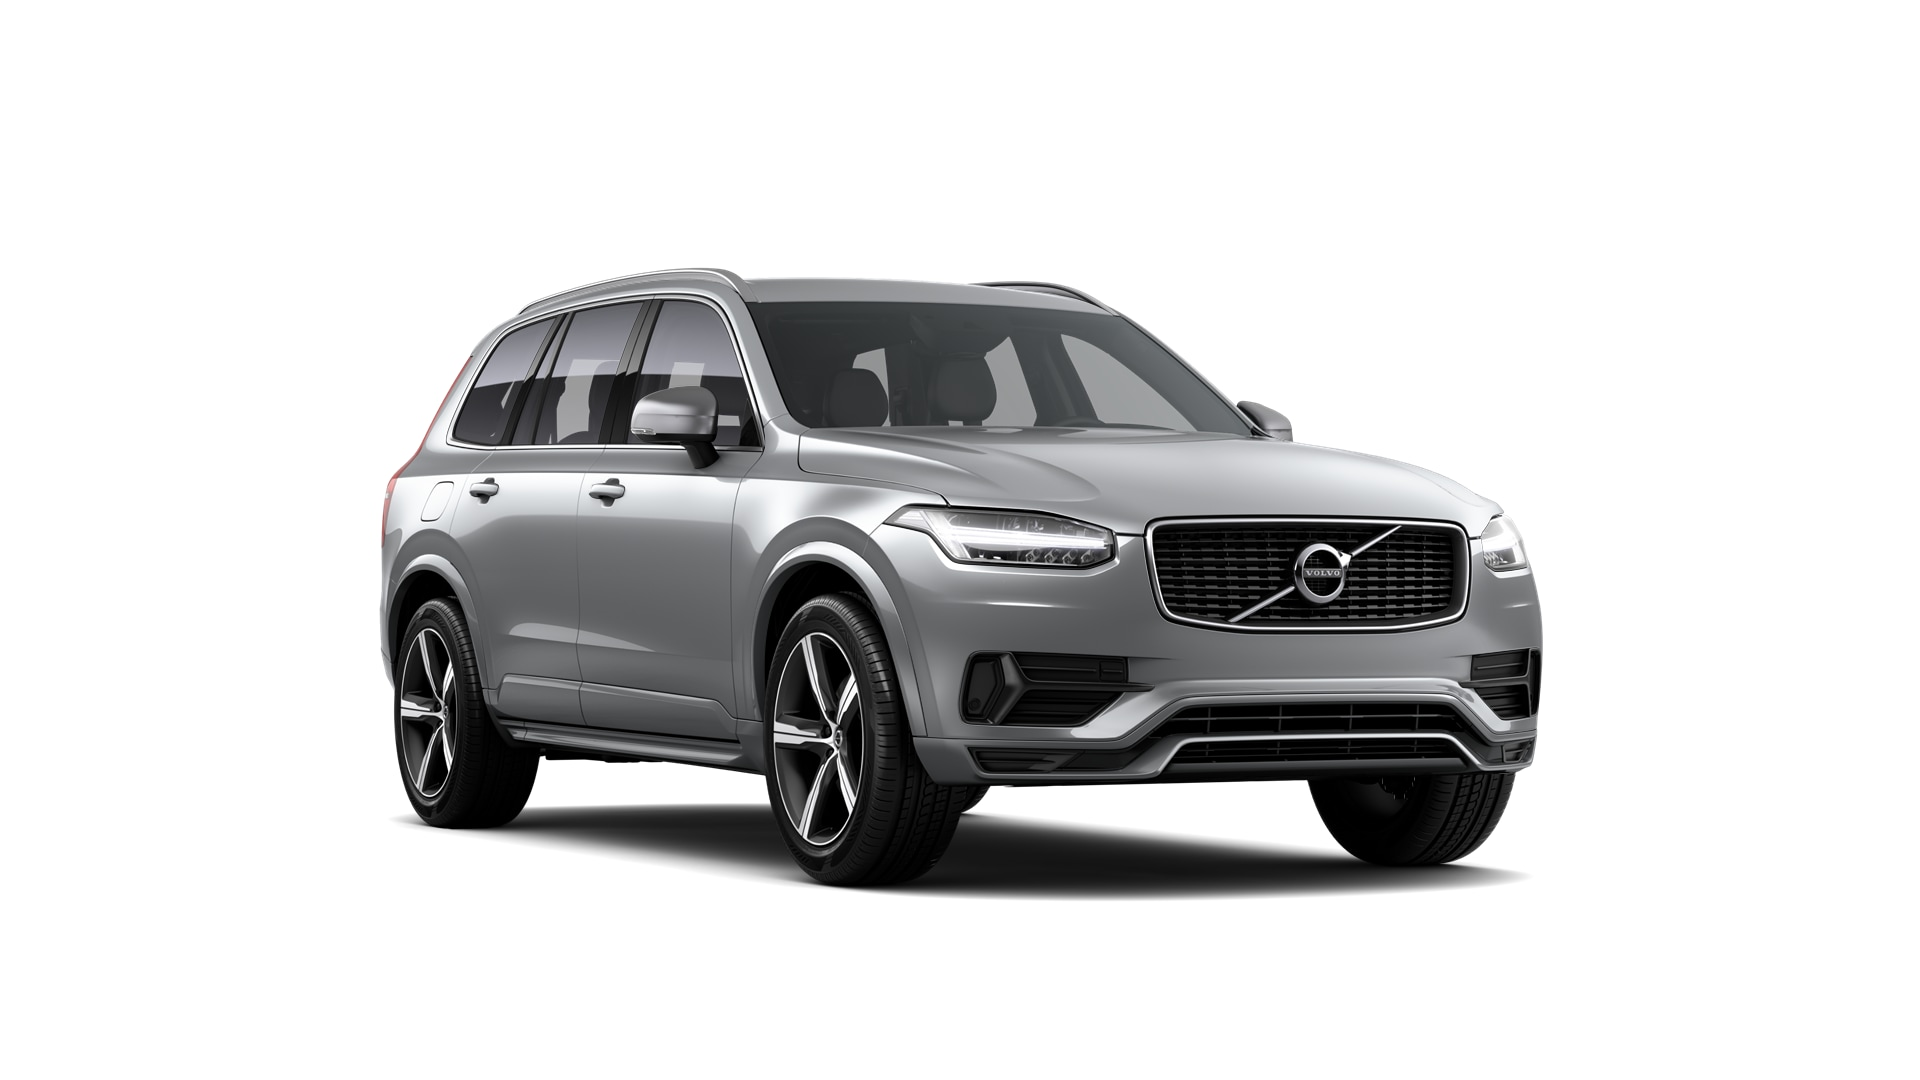 Volvo XC90 Luxury Family SUV